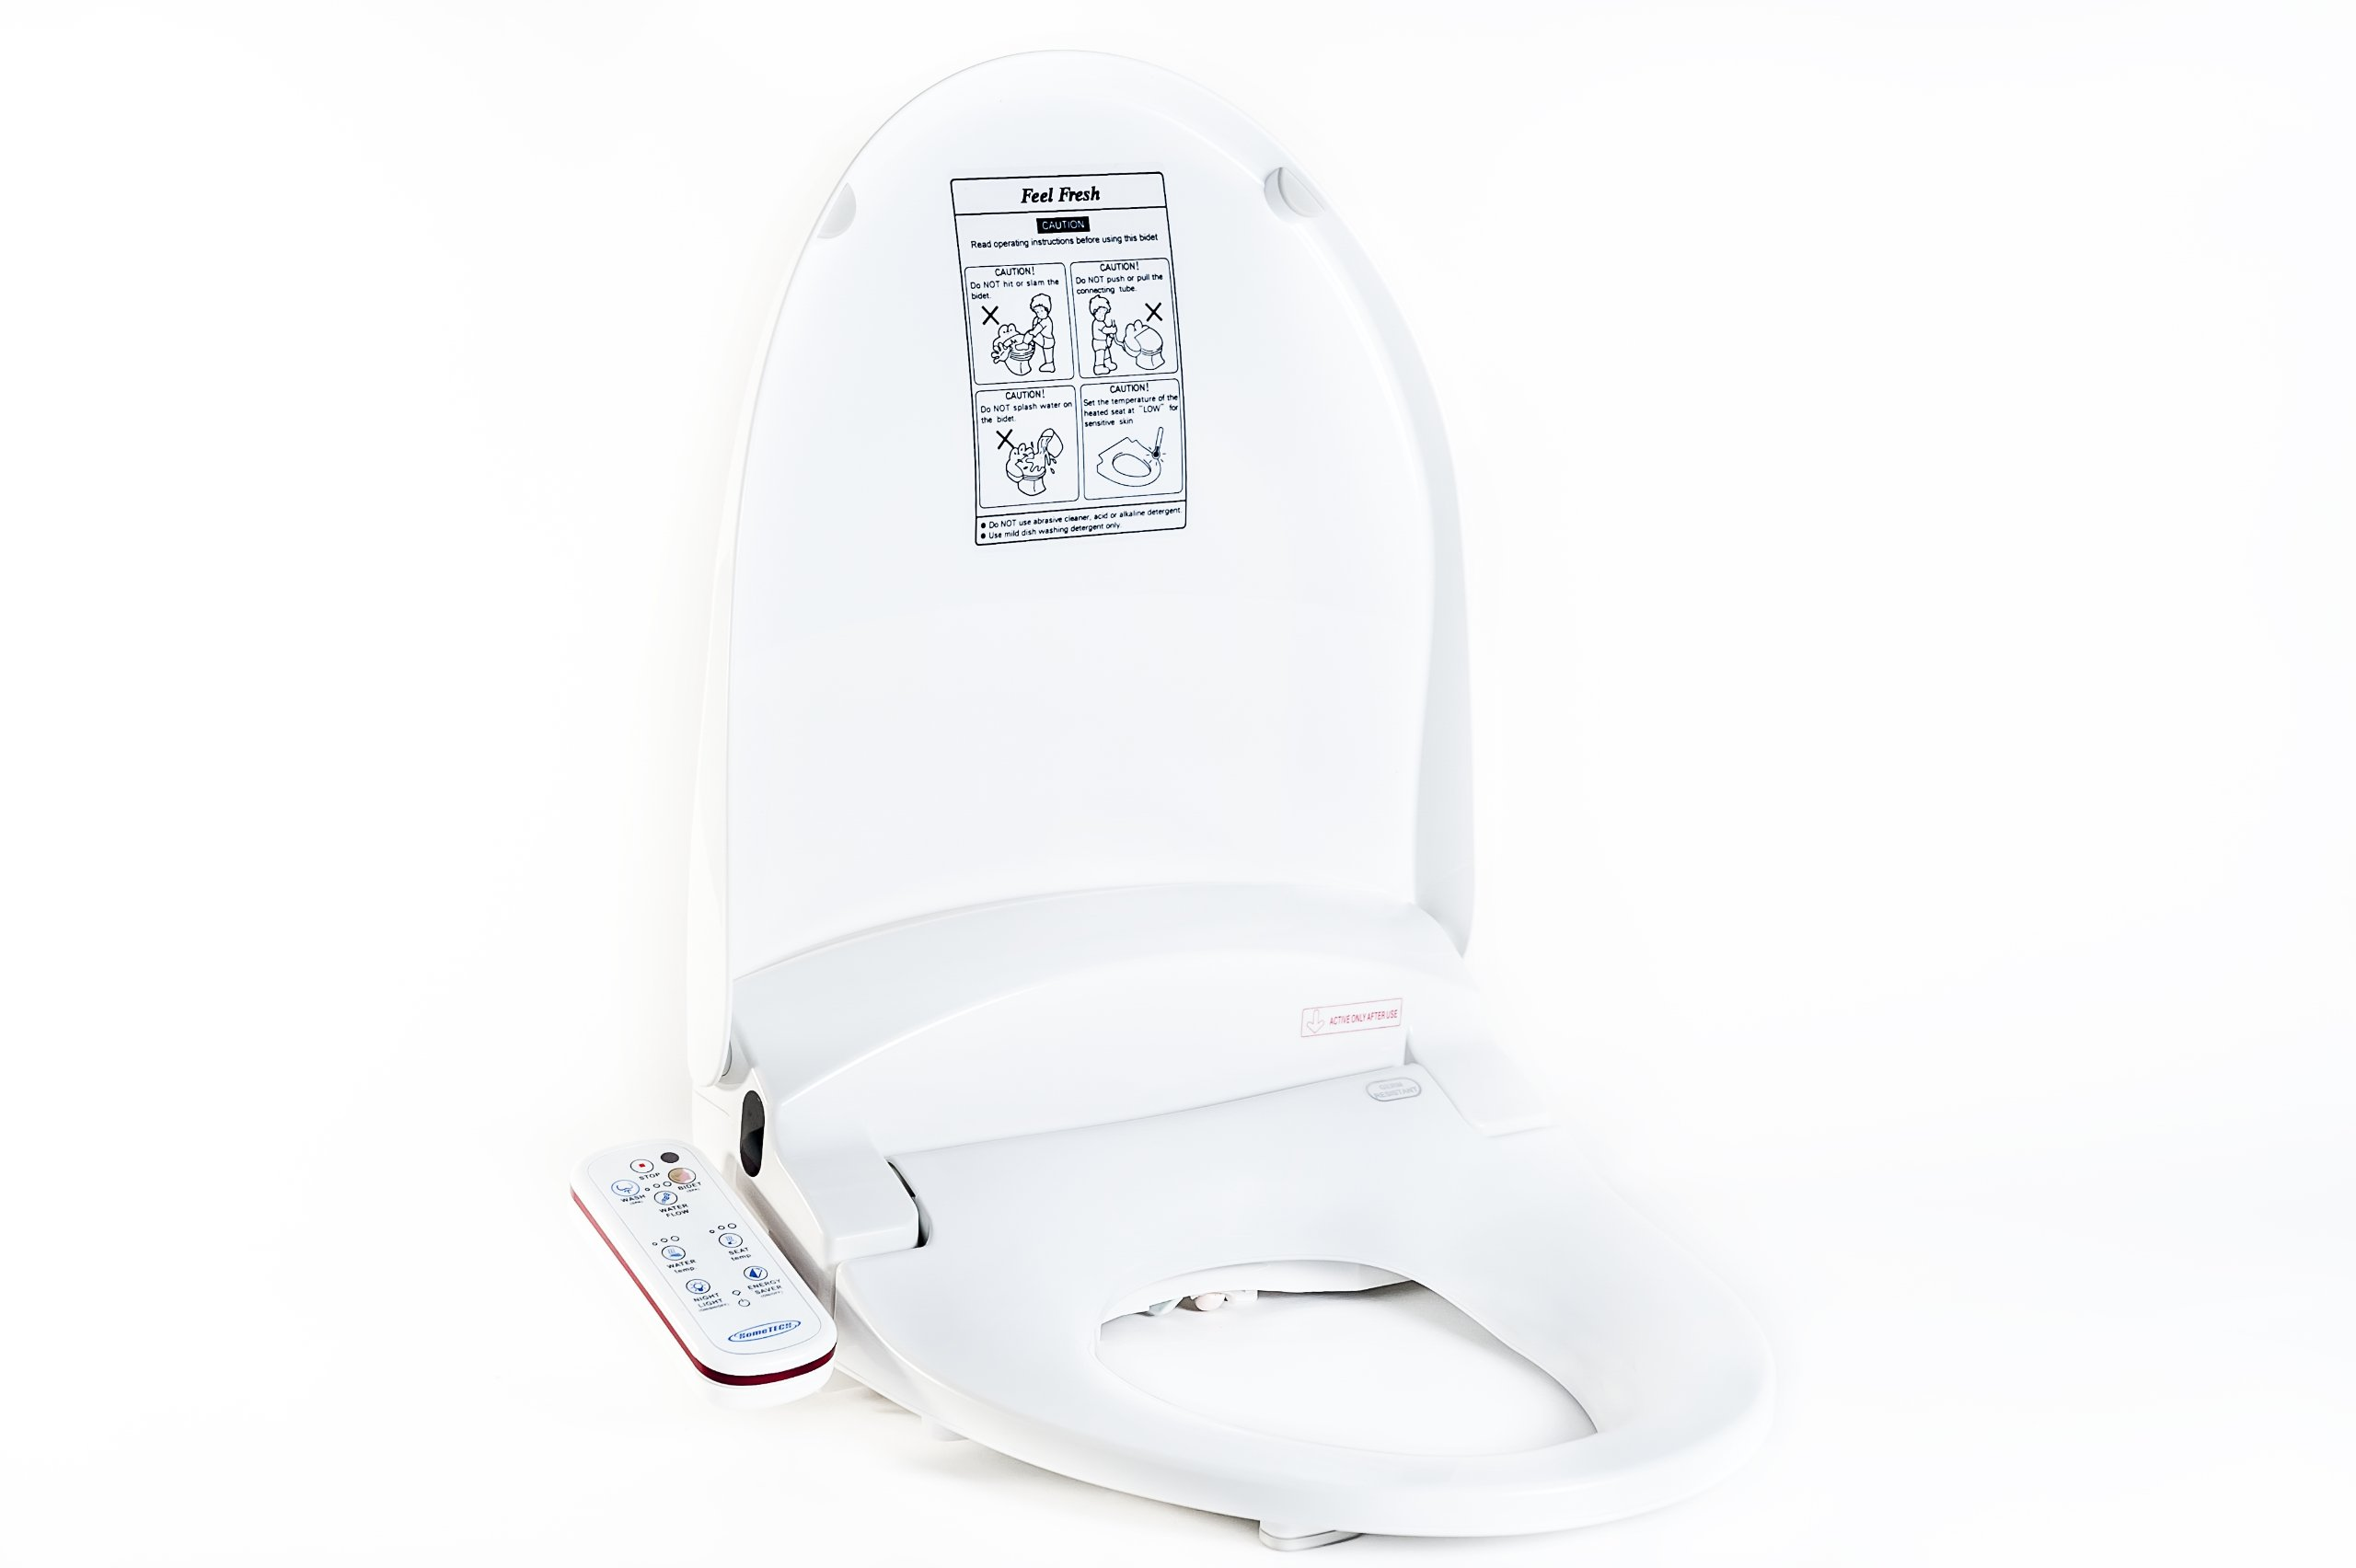 Feel Fresh HI-7001WT Elongated Electric Bidet Seat with Duo Mount Wireless Remote Control and Warm Air Dryer White by Feel Fresh